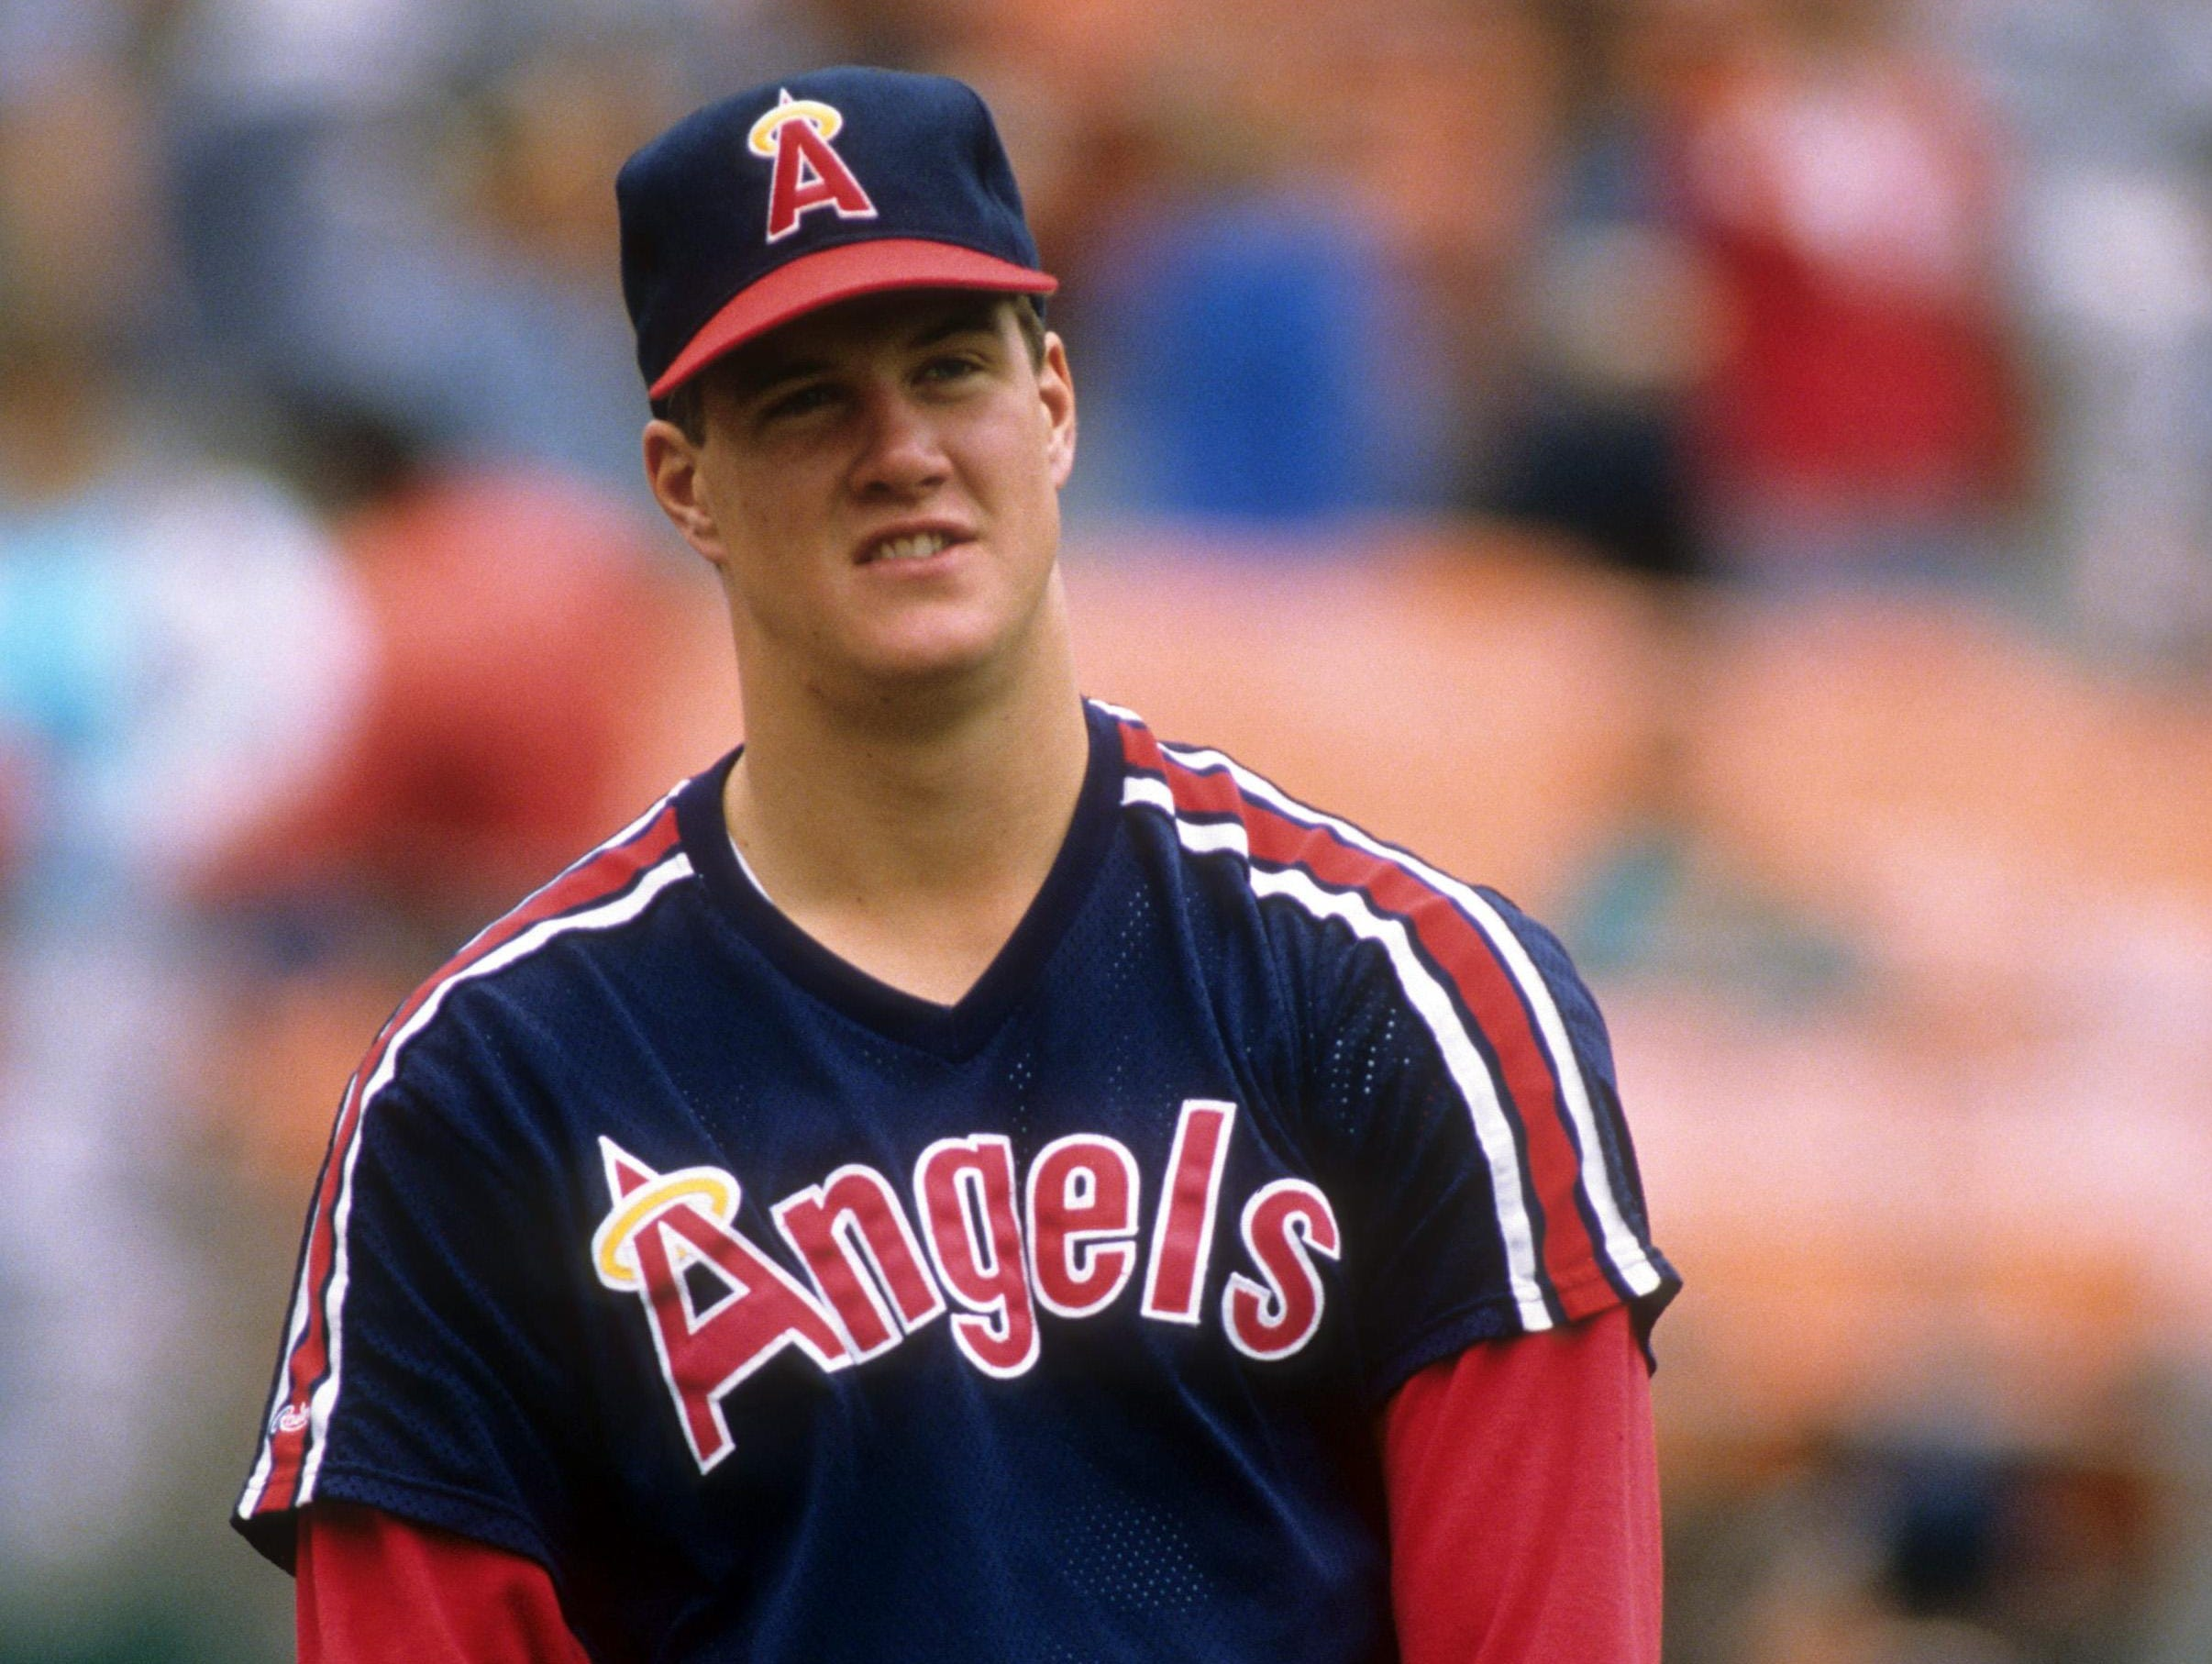 Pitcher Jim Abbott of the California Angels warms-up before an MLB game against the Oakland Athletics circa 1989 at the Oakland Coliseum.